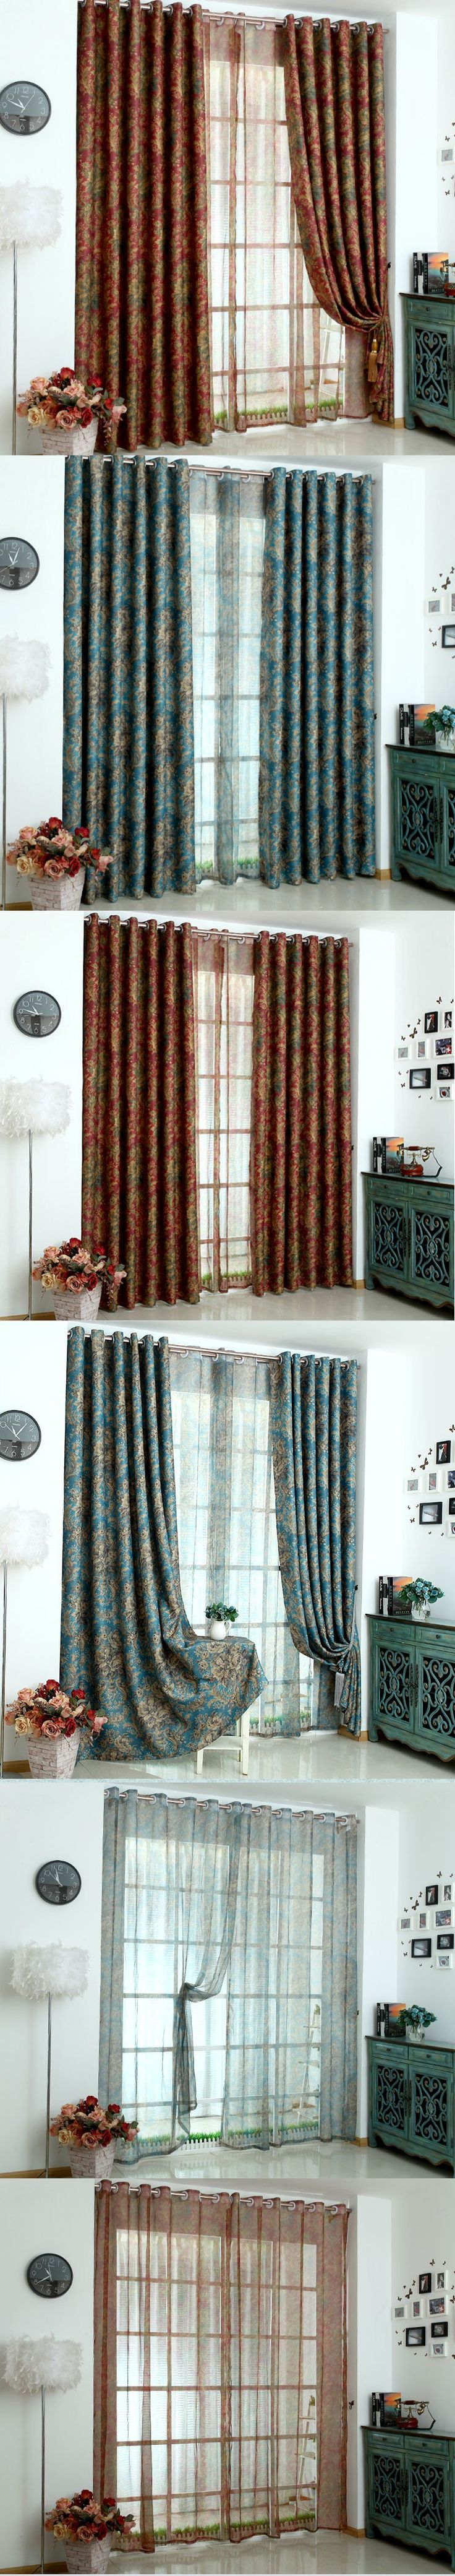 Blackout curtains for bedroom - Europe Luxurious Double Sided Printed Tulle Window Curtains For Living Room Bedroom Blackout Drapes Floral